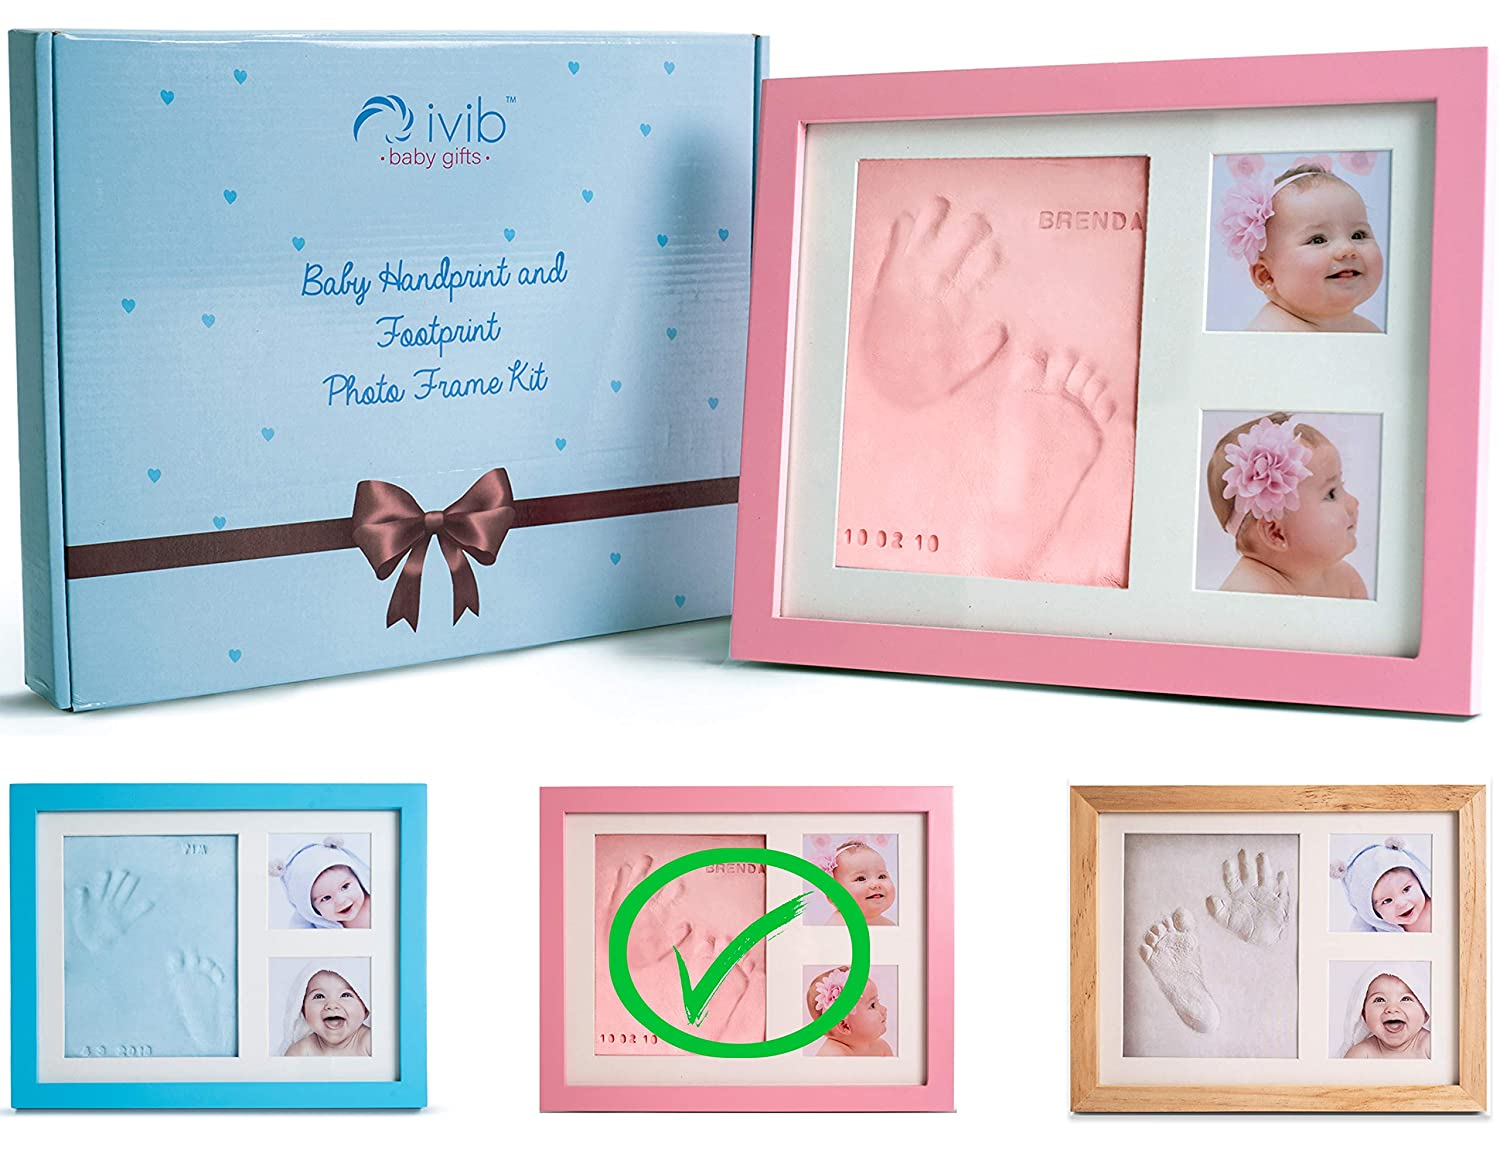 Baby Handprint & Footprint Photo Frame Kit - Premium Casting No Mold Clay - Box Ready for Boy Girls Baby Shower Gifts - Newborn Keepsake Personalized Picture Frames - Wall/table - Free Stamp Set- Pink